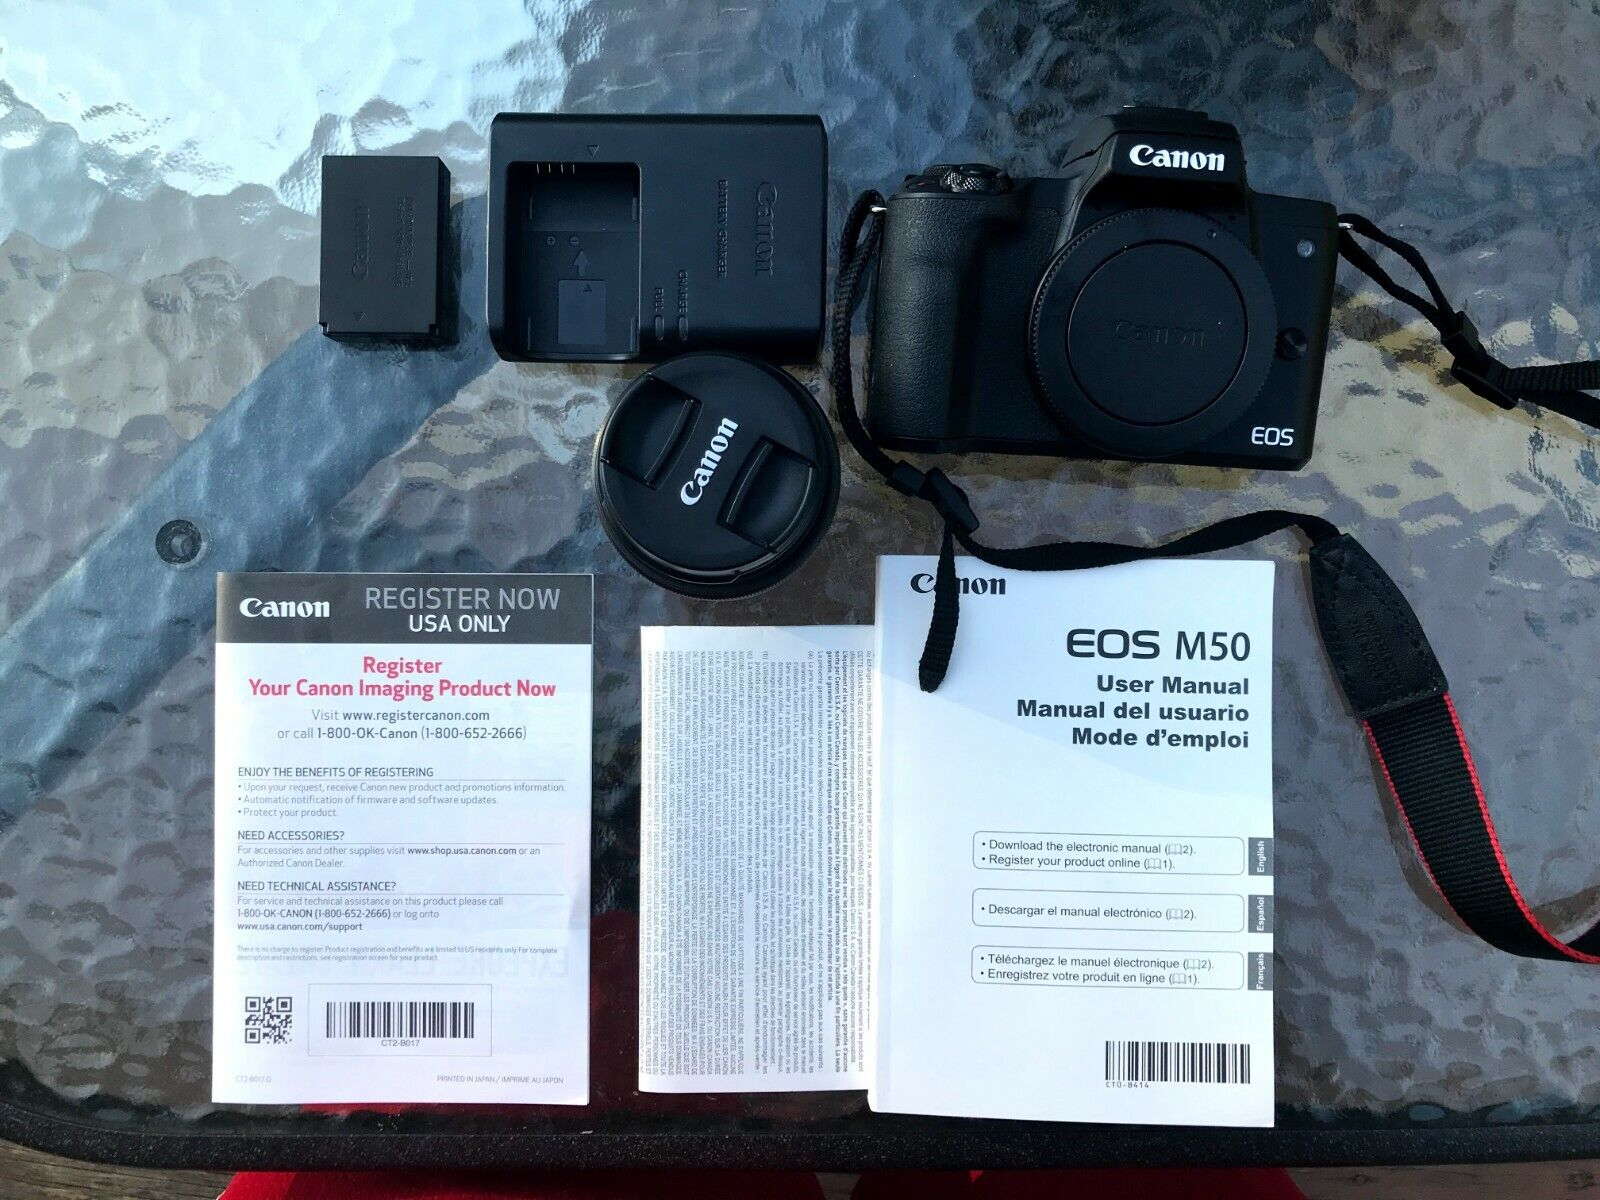 Canon EOS M50 24.1MP Mirrorless Digital Camera With 15-45mm STM Lens - Black - $530.00